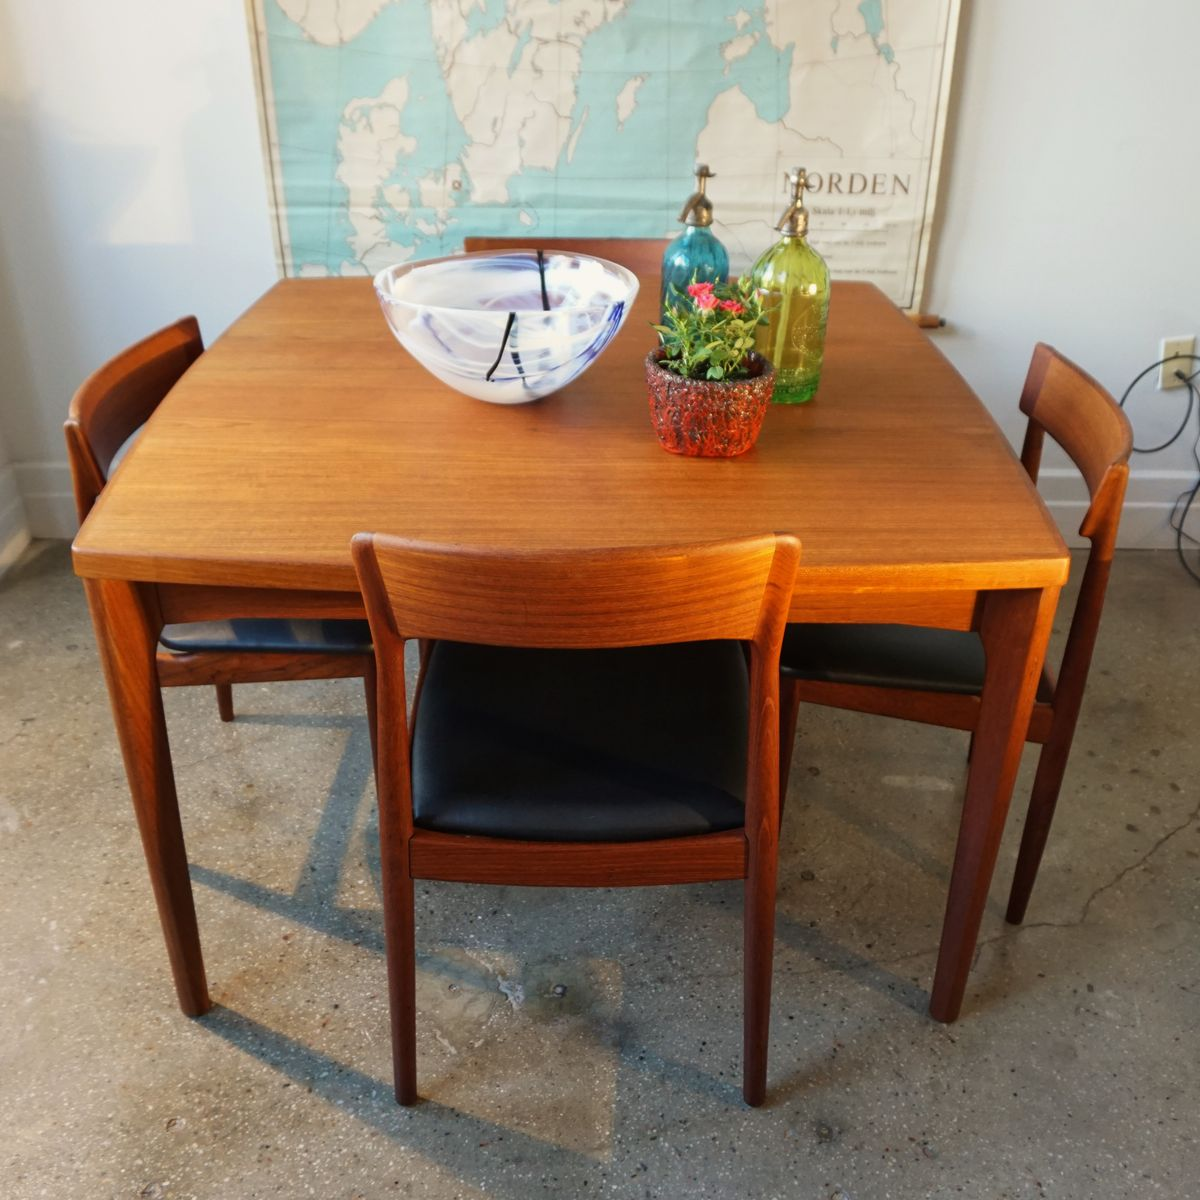 Vintage Extendable Dining Table Vintage Extendable Dining Table By Henning Kjrnulf For Sale At Pamono